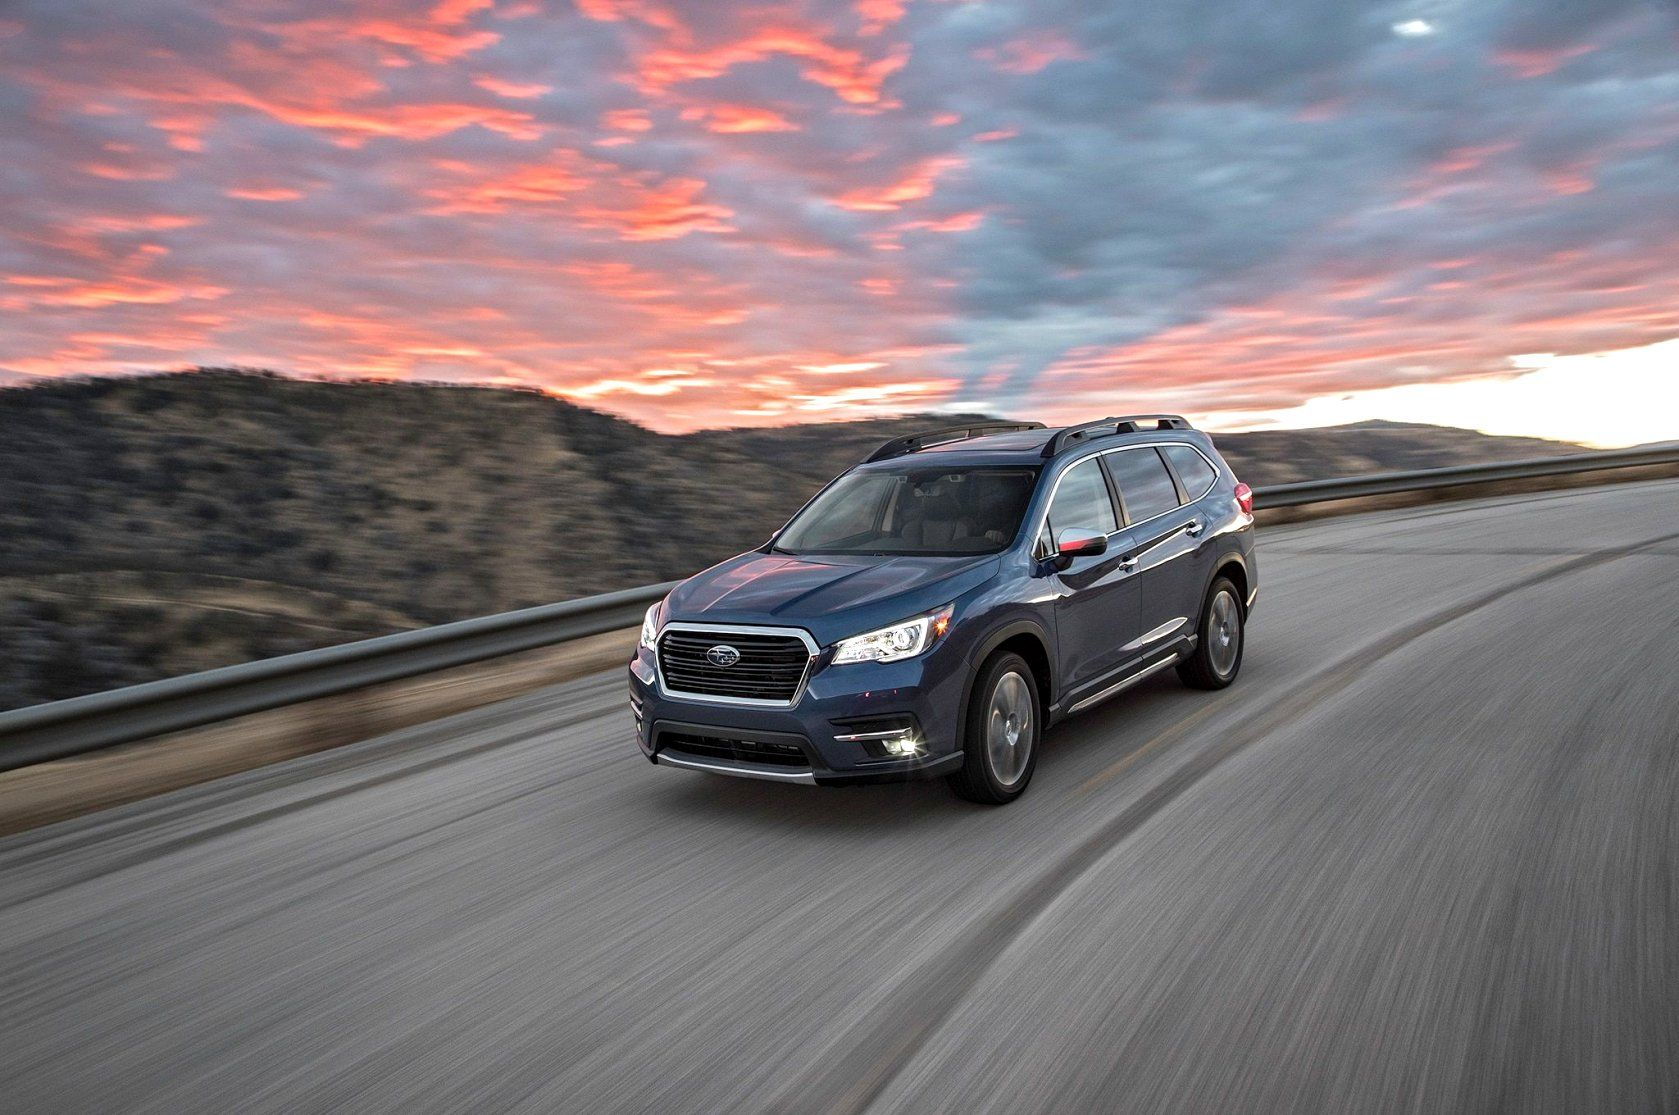 2020 Subaru Forester Towing Capacity Research New Subaru Forester Subaru Subaru Outback